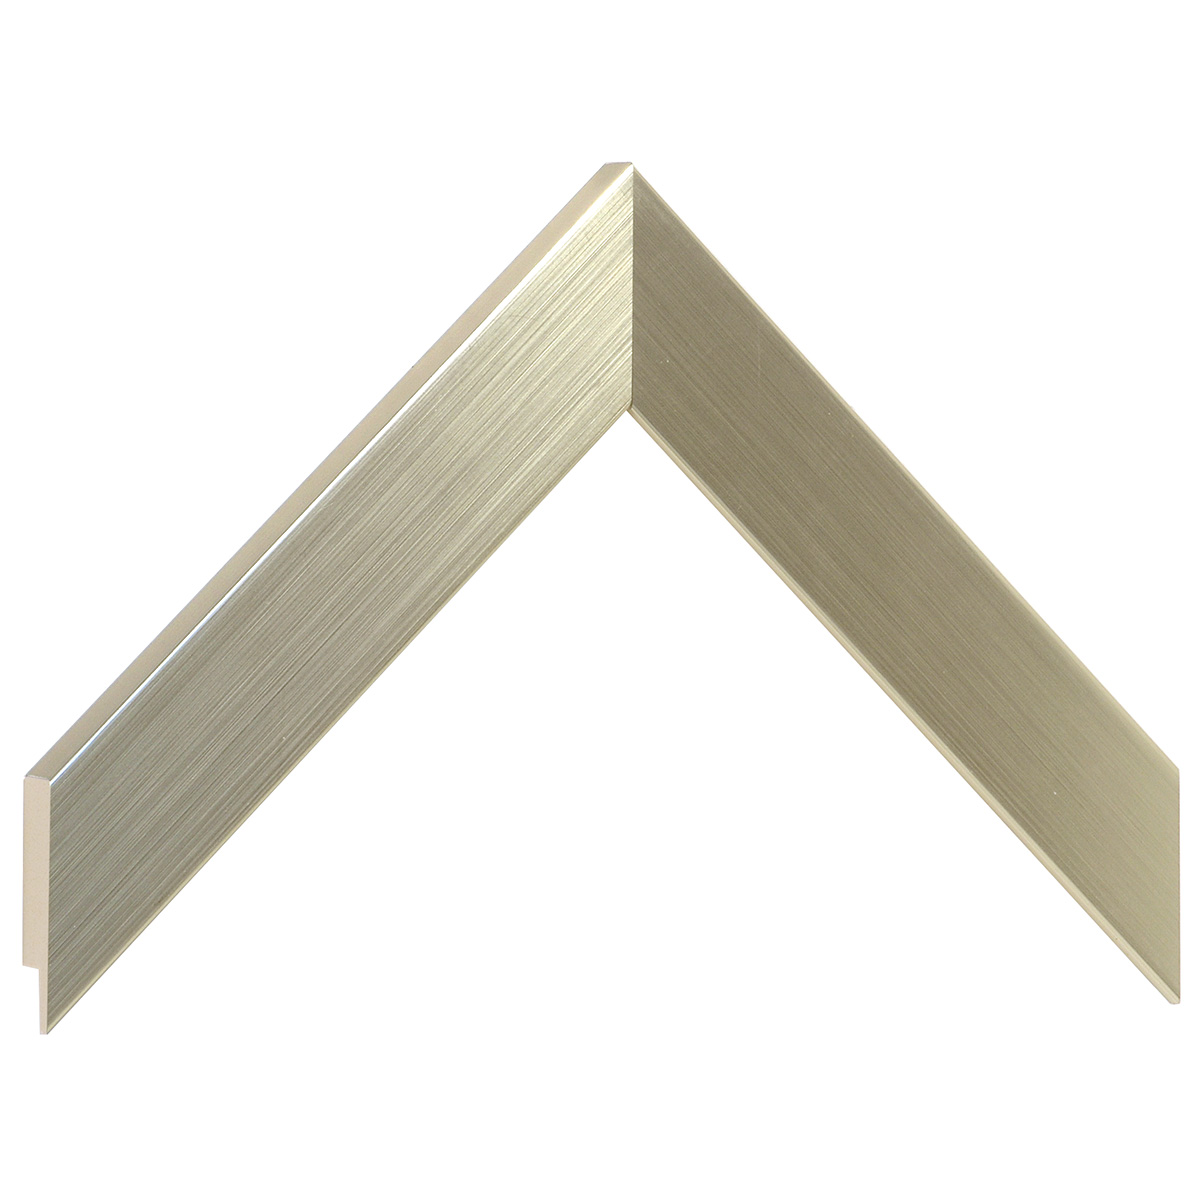 Moulding ayous, width 30mm height 14 - platinum